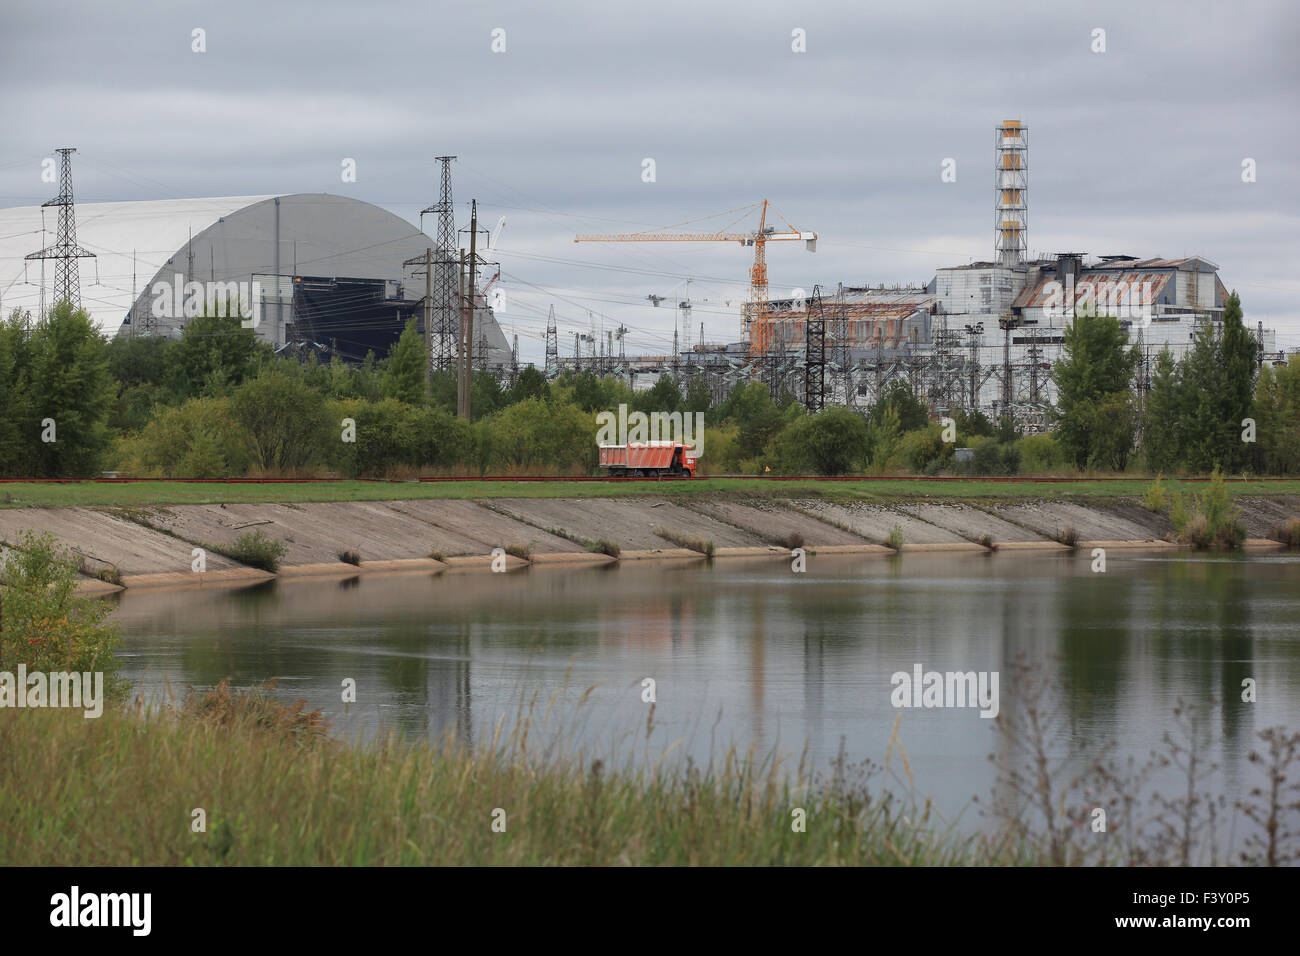 The Chernobyl nuclear power plant with the destroyed reactor no. 4 and the New Safe Confinement under construction. - Stock Image